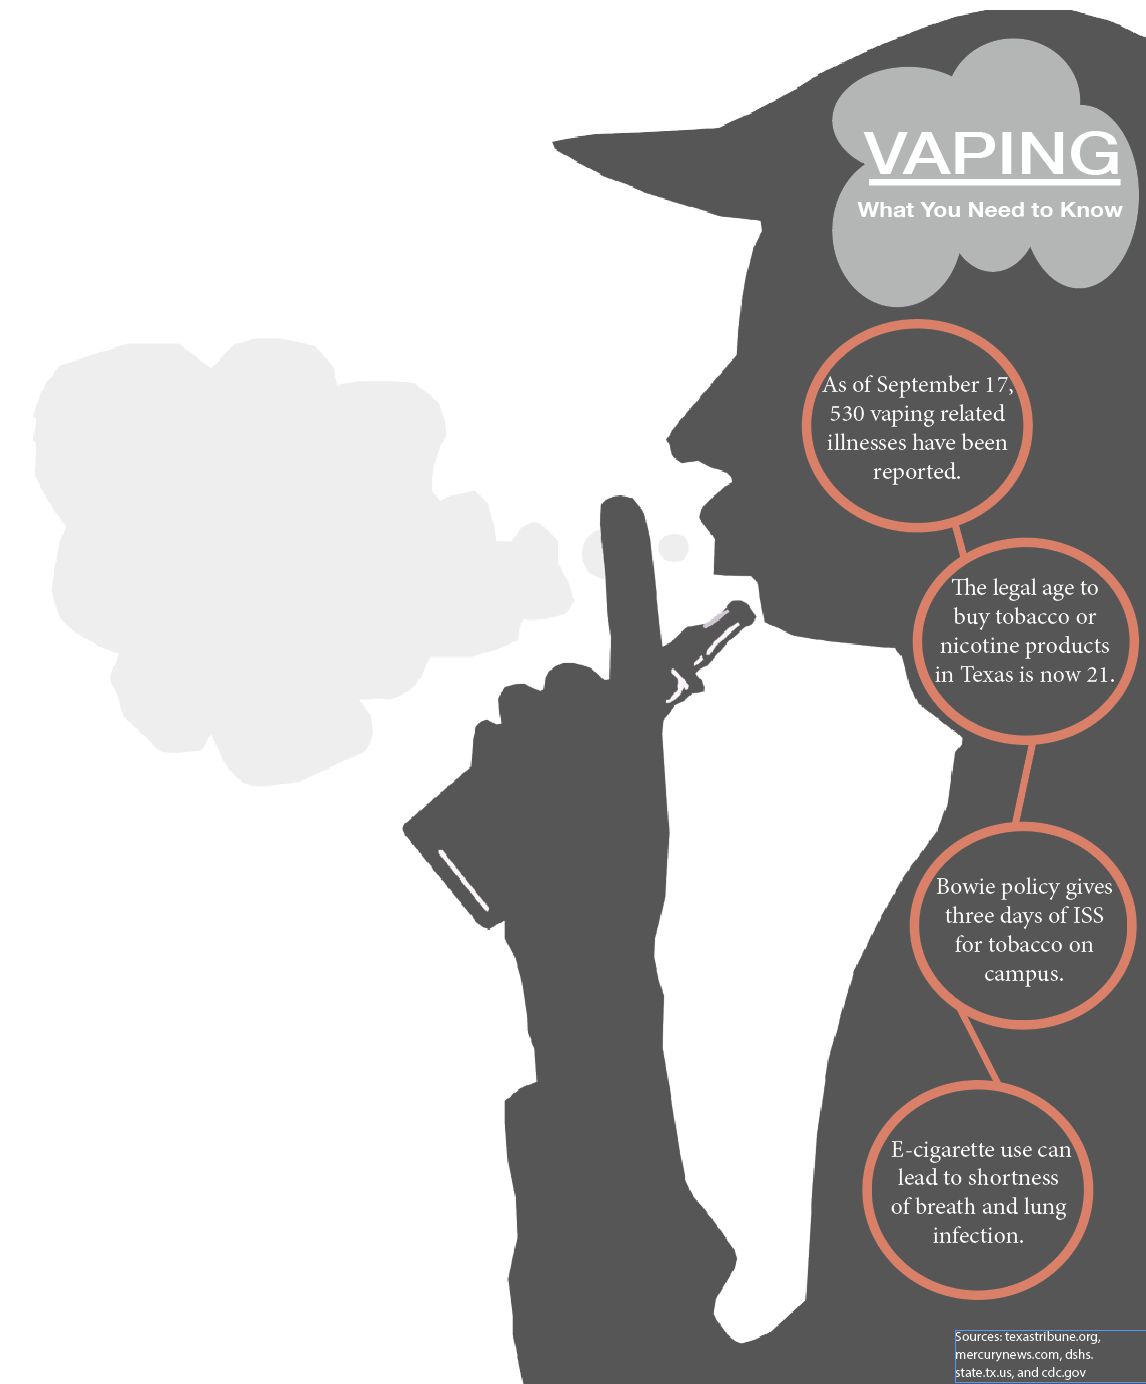 A figure exhales after using an e-cigarette. Facts are presented with the most important thing to know about vaping and Bowie/s policy on the matter.